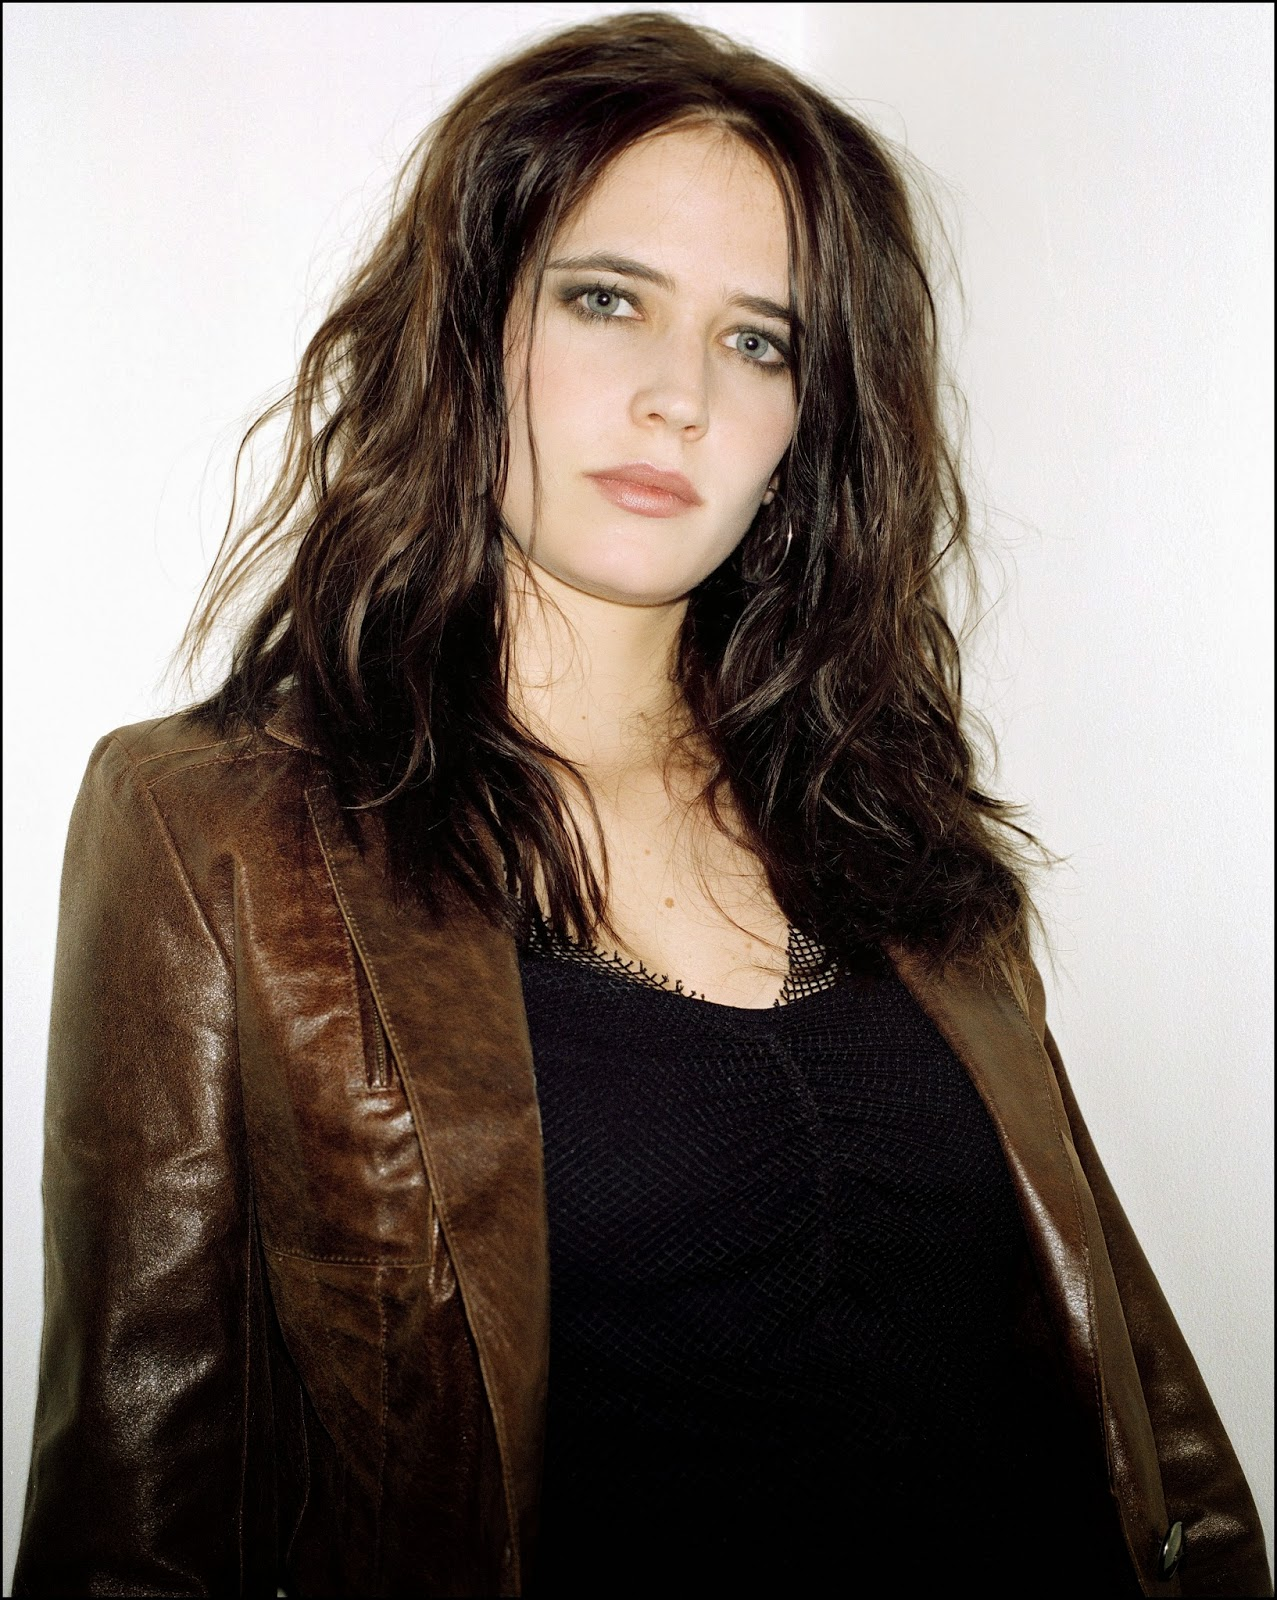 Chatter Busy: Eva Green Quotes Eva Green